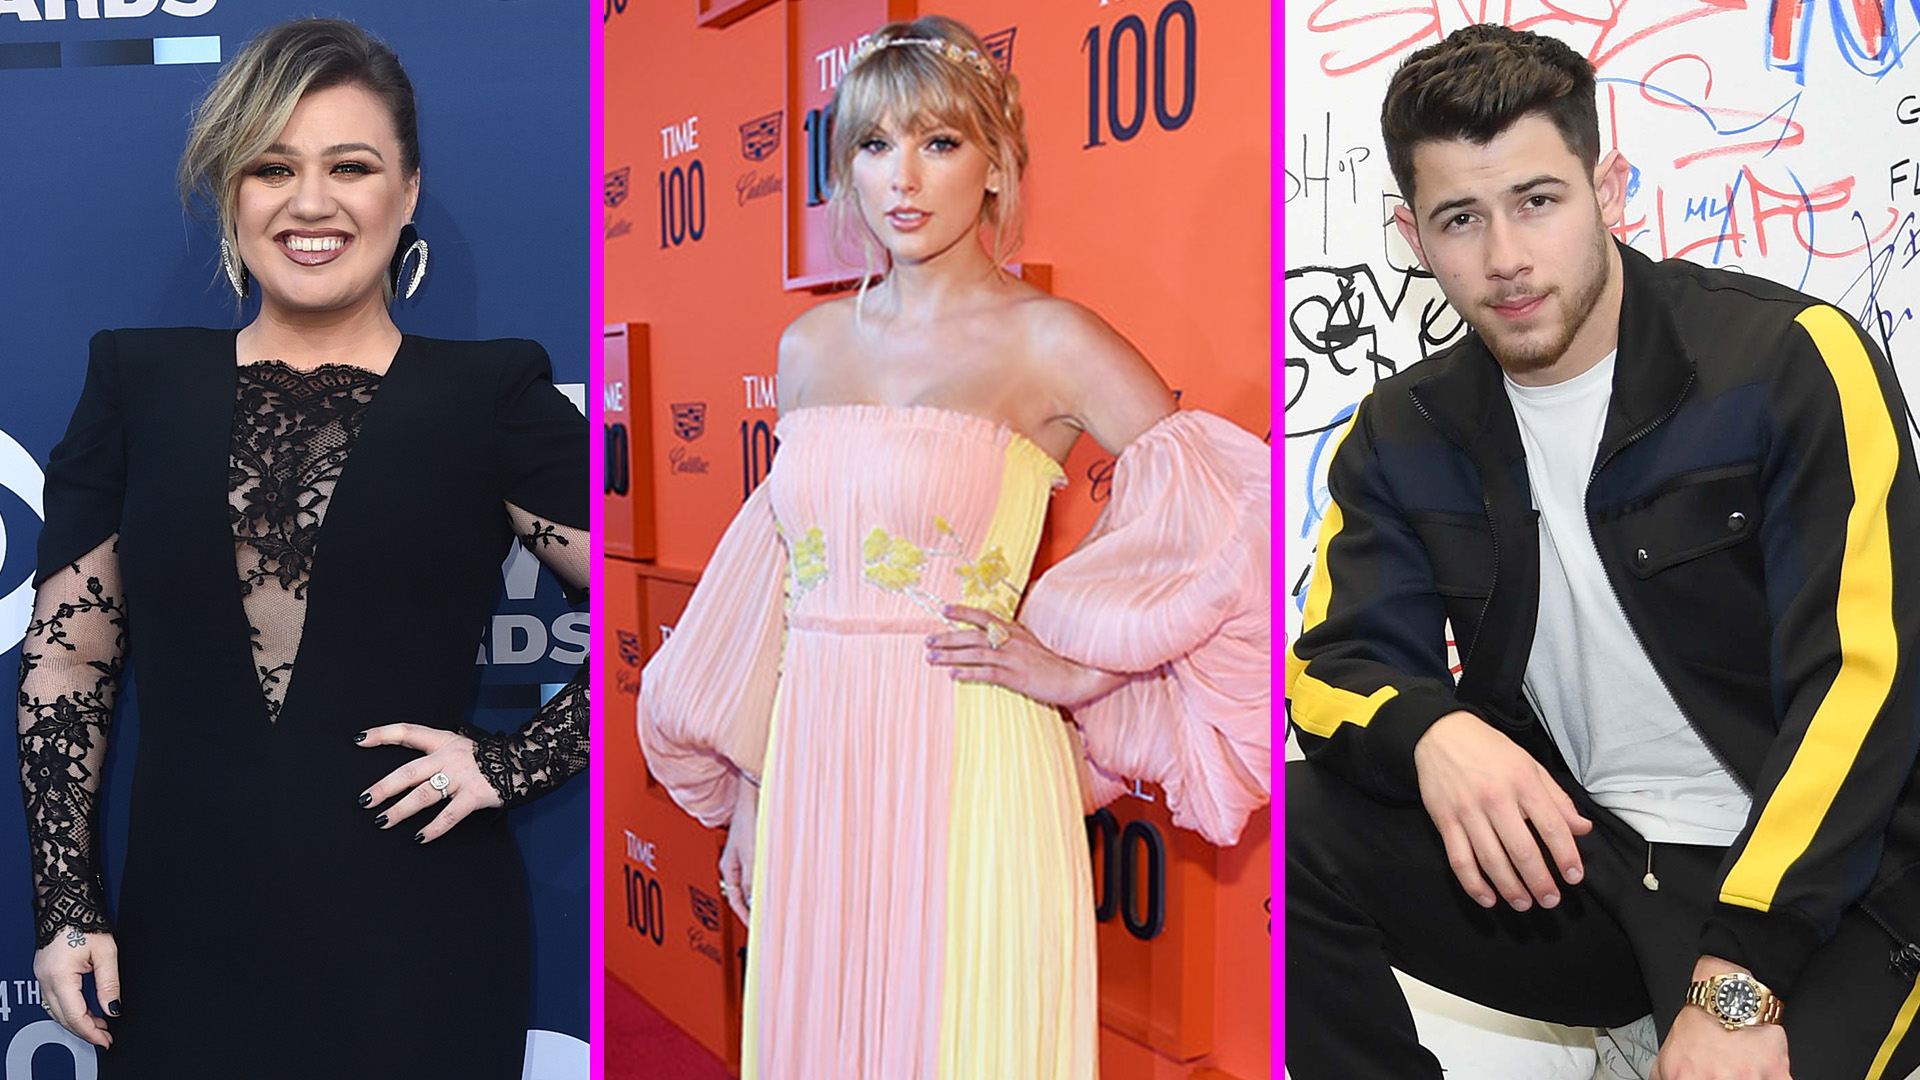 4fa6a7148815 190501_3949110_The_Jonas_Brothers__Taylor_Swift___More_Star_anvver_1.jpg